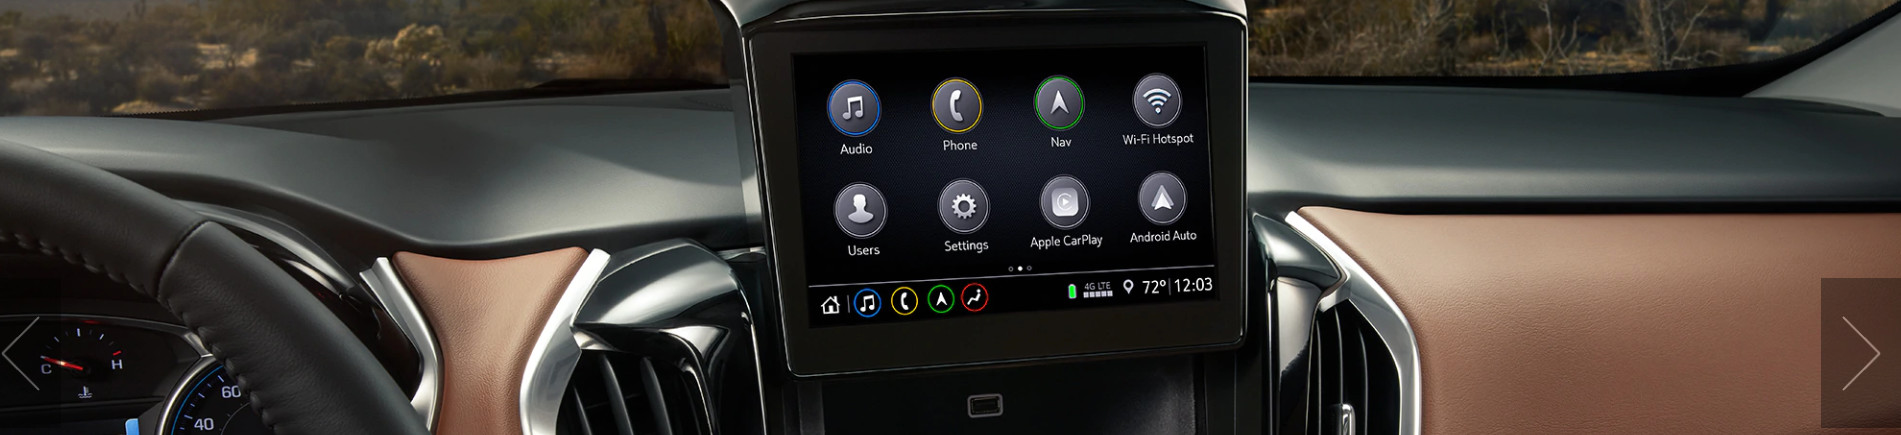 Touchscreen in the 2020 Traverse